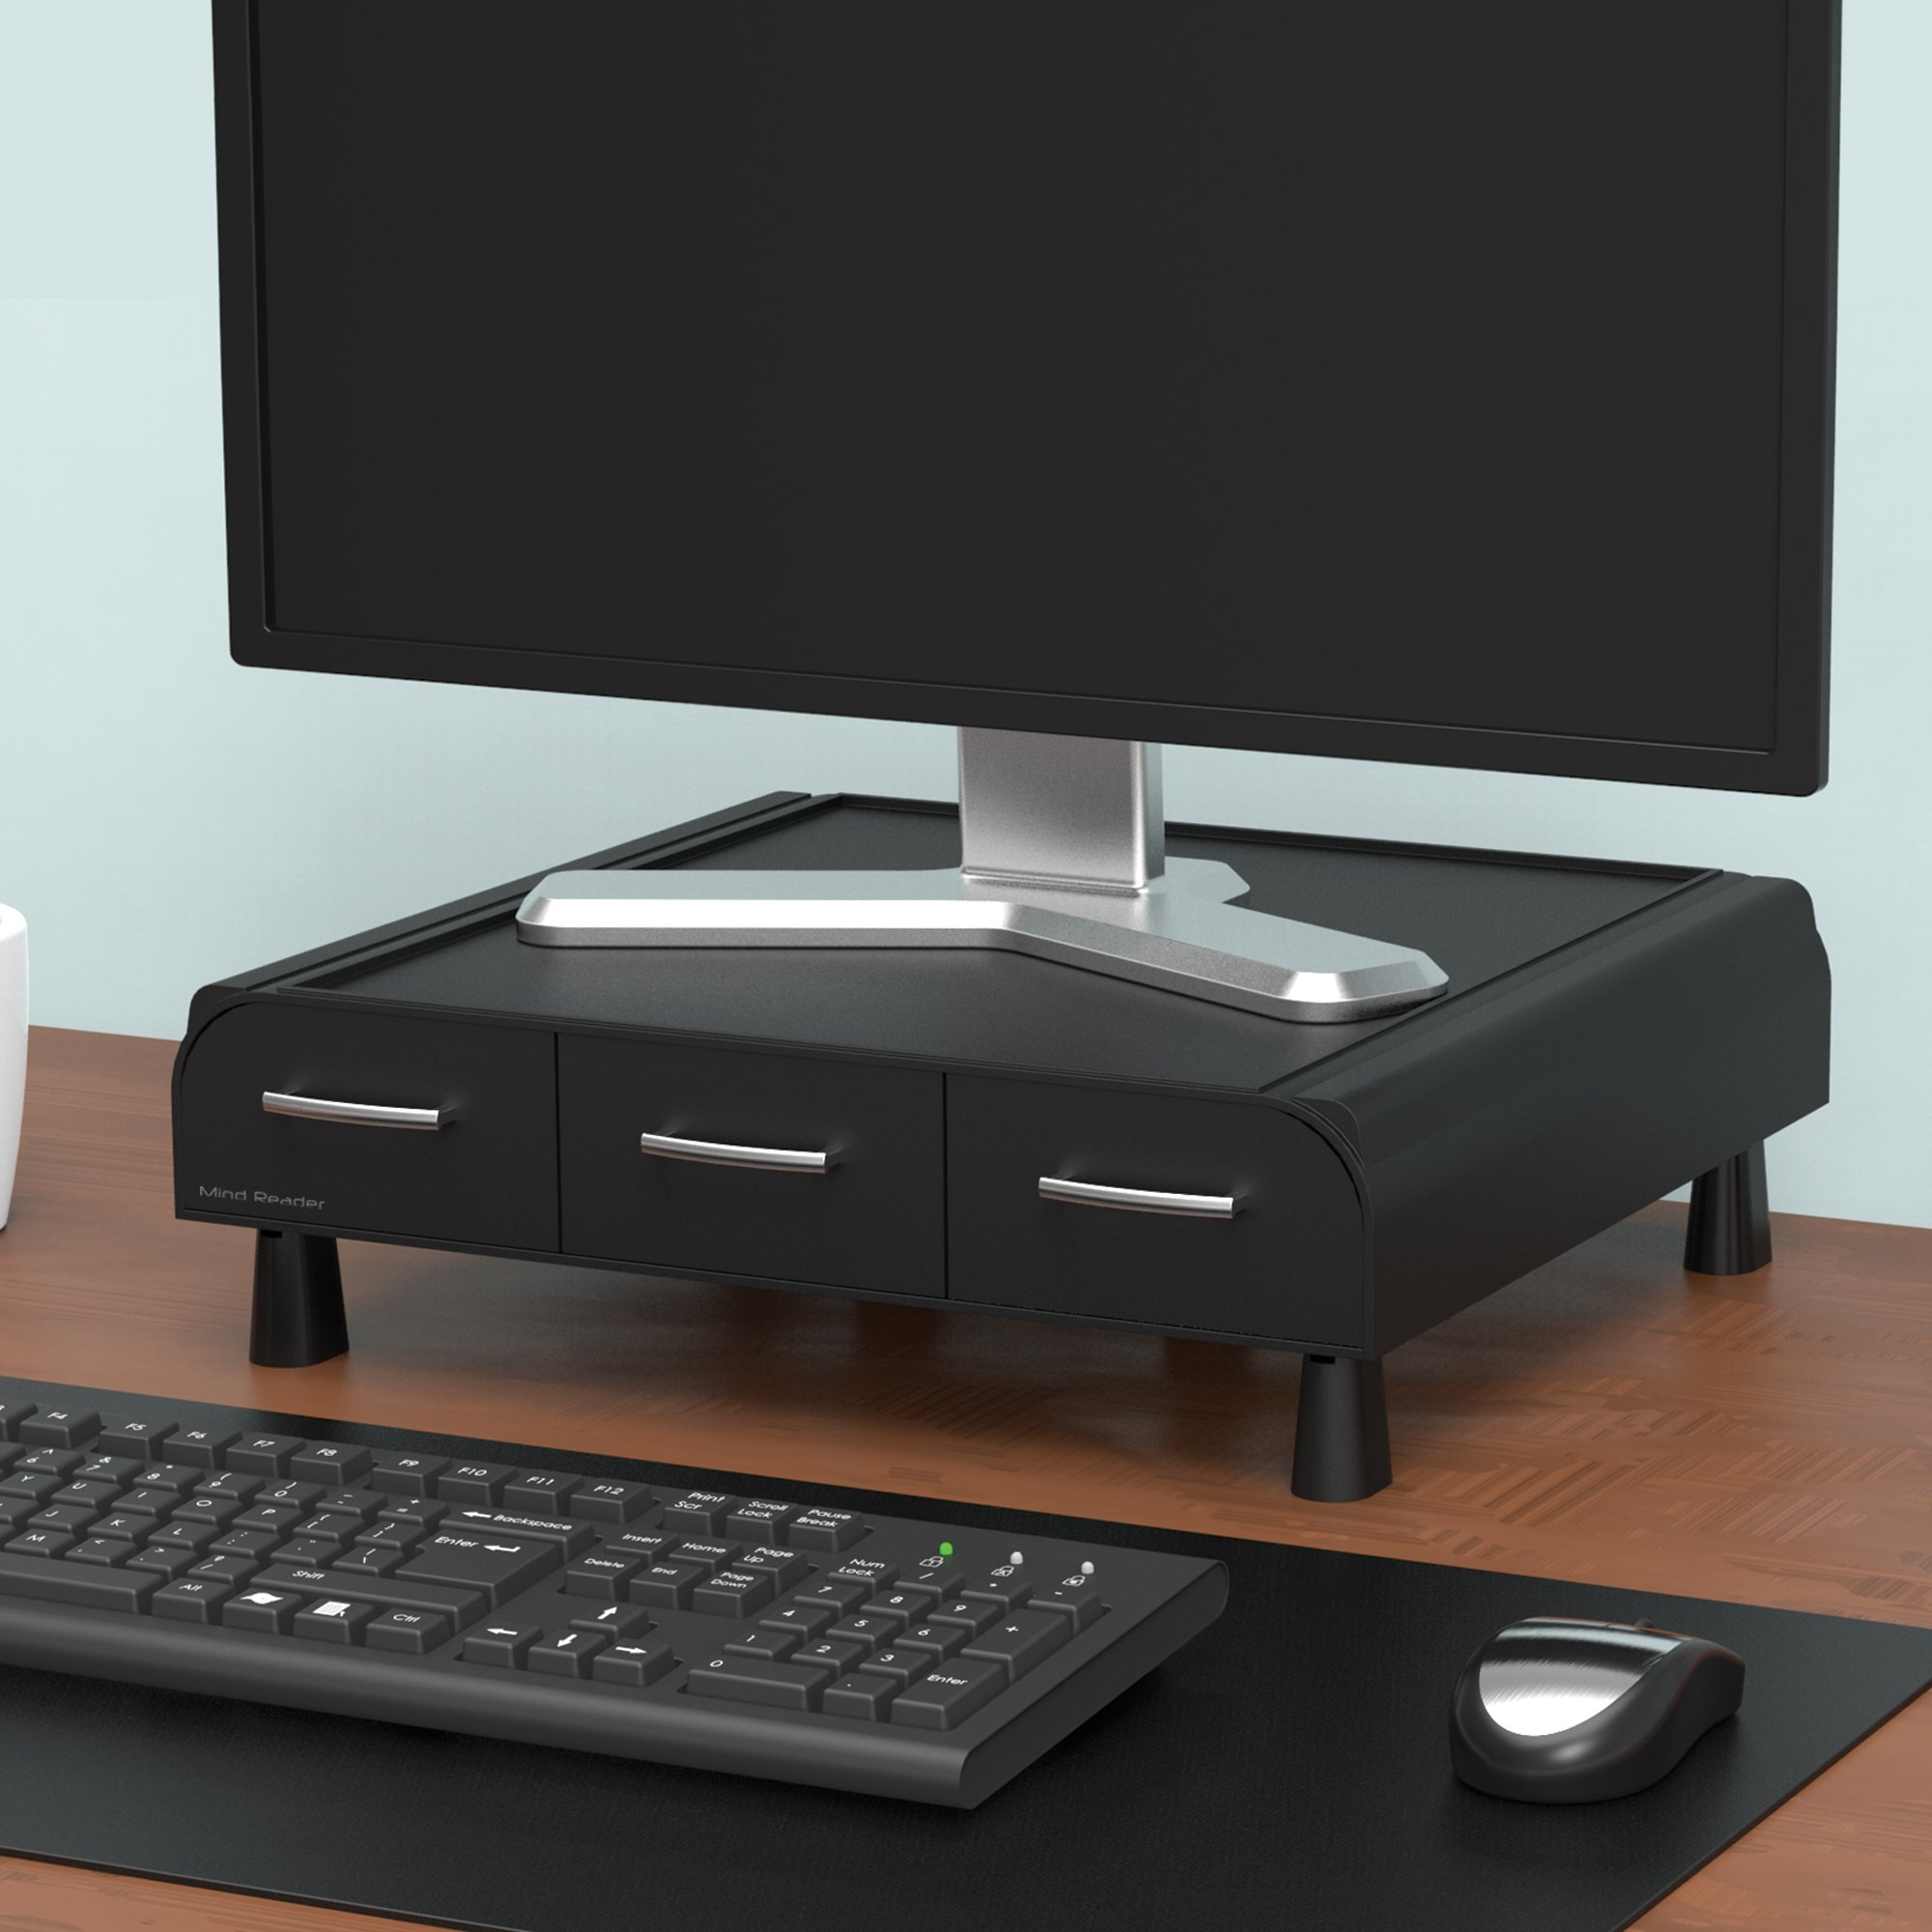 Mind Reader PC, Laptop, IMAC Monitor Stand and Desk Organizer, Black by Mind Reader (Image #5)